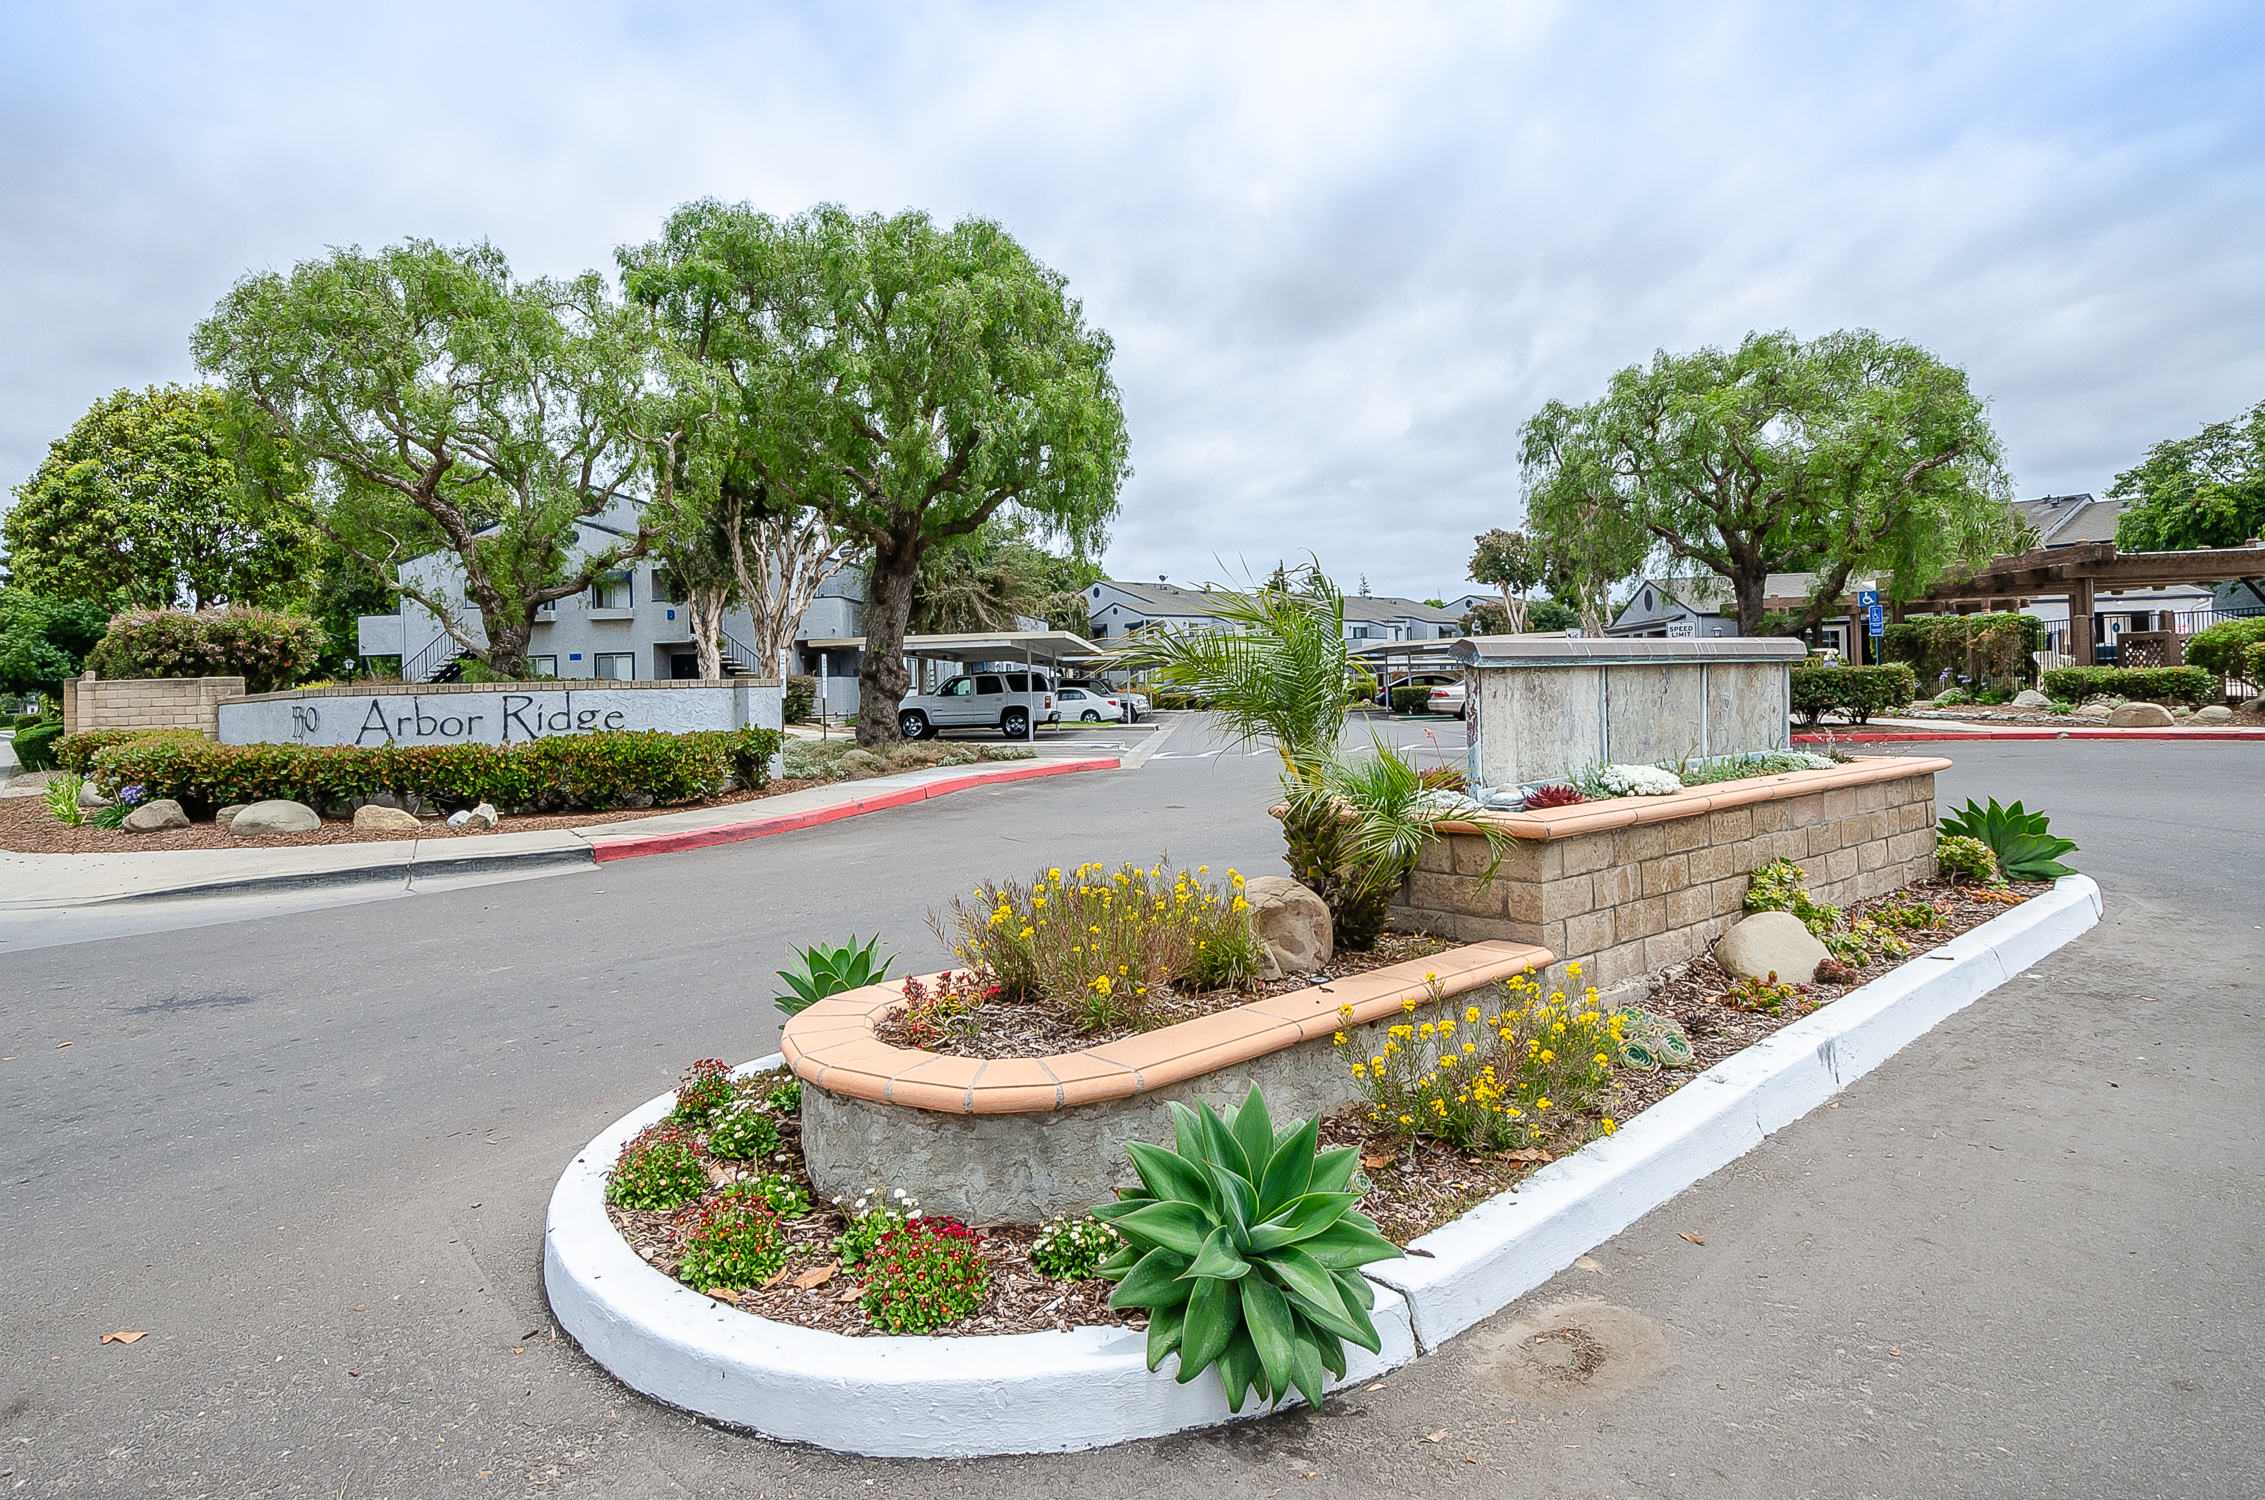 apartment complex entrance with landscaped island, Arbor Ridge sign, and tall green trees